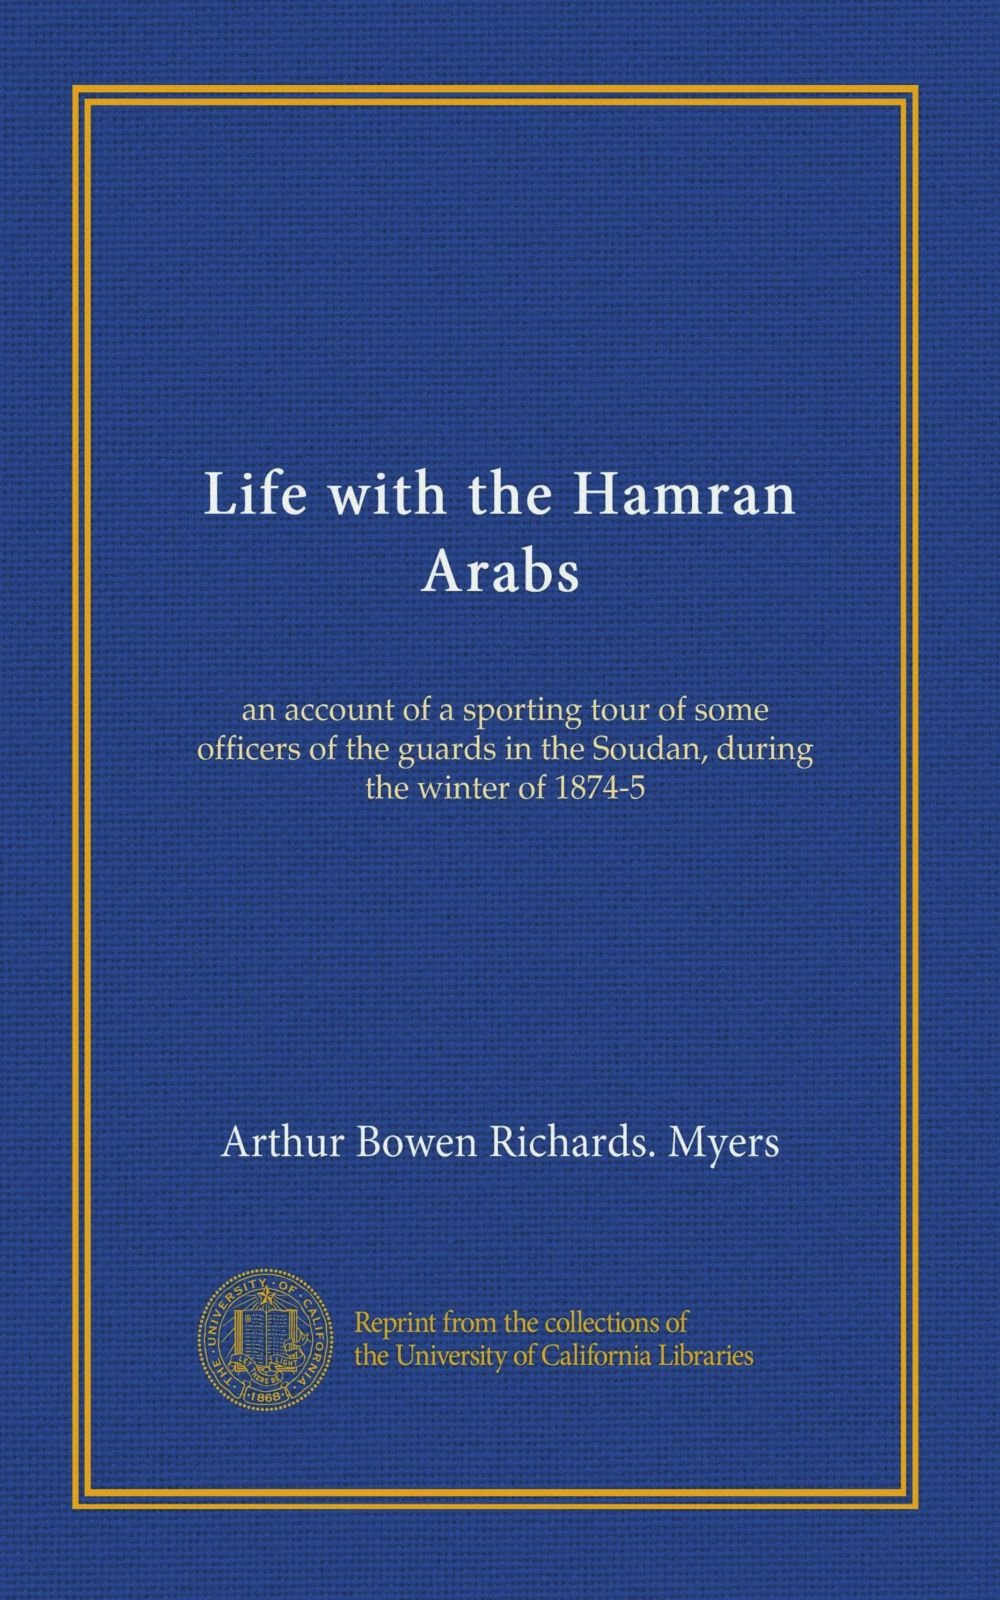 Download Life with the Hamran Arabs: an account of a sporting tour of some officers of the guards in the Soudan, during the winter of 1874-5 pdf epub